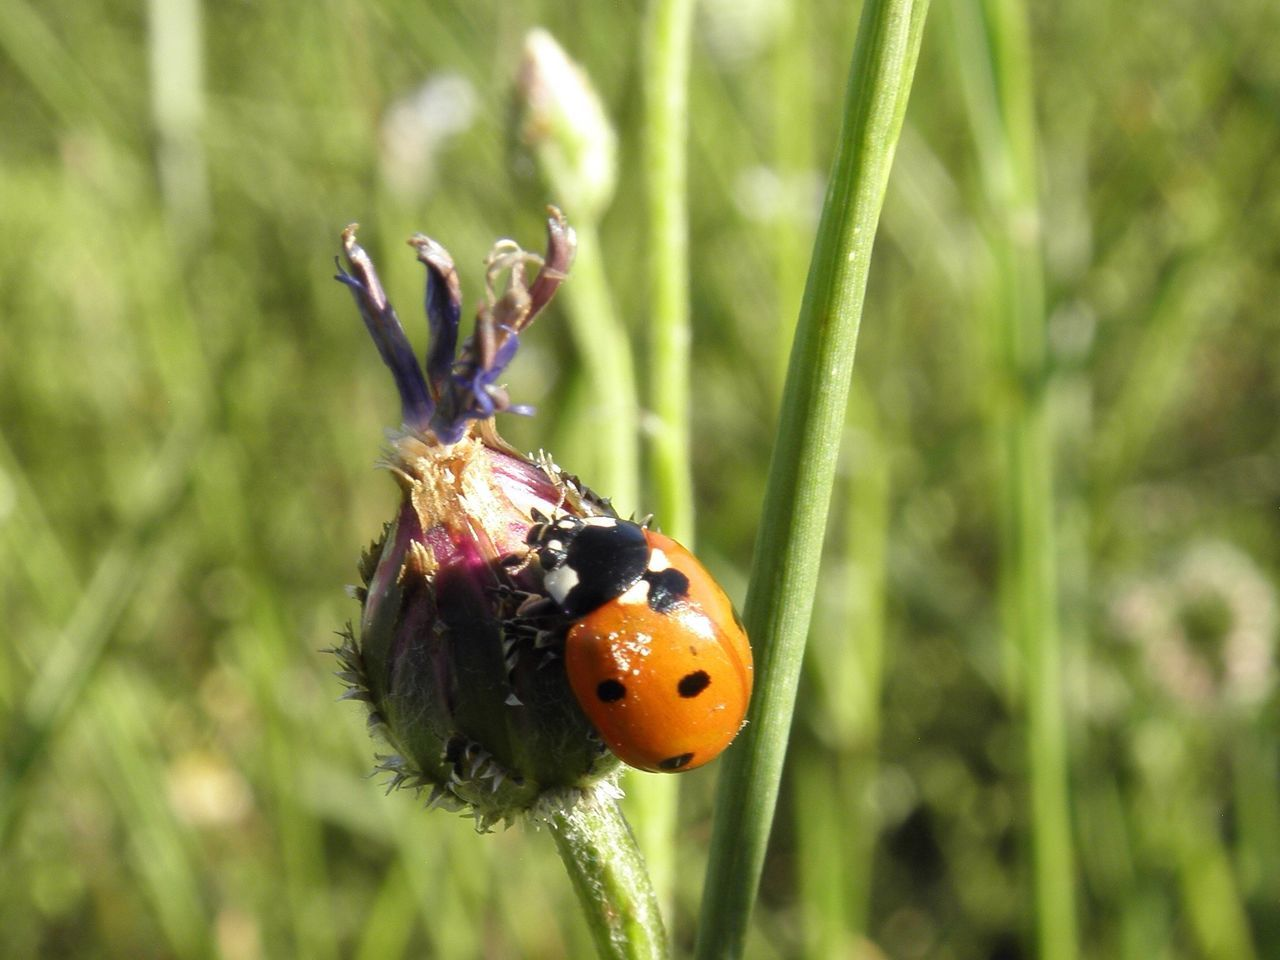 Beatle Insect Animal Themes Animals In The Wild One Animal Close-up Nature Plant Focus On Foreground No People Outdoors Animal Behavior Day Beetle Grass Ladybug Ladybug Ladybird Lady Bird Ladybeetle Good Luck Fortune Cornflower Springtime Faded EyeEmNewHere